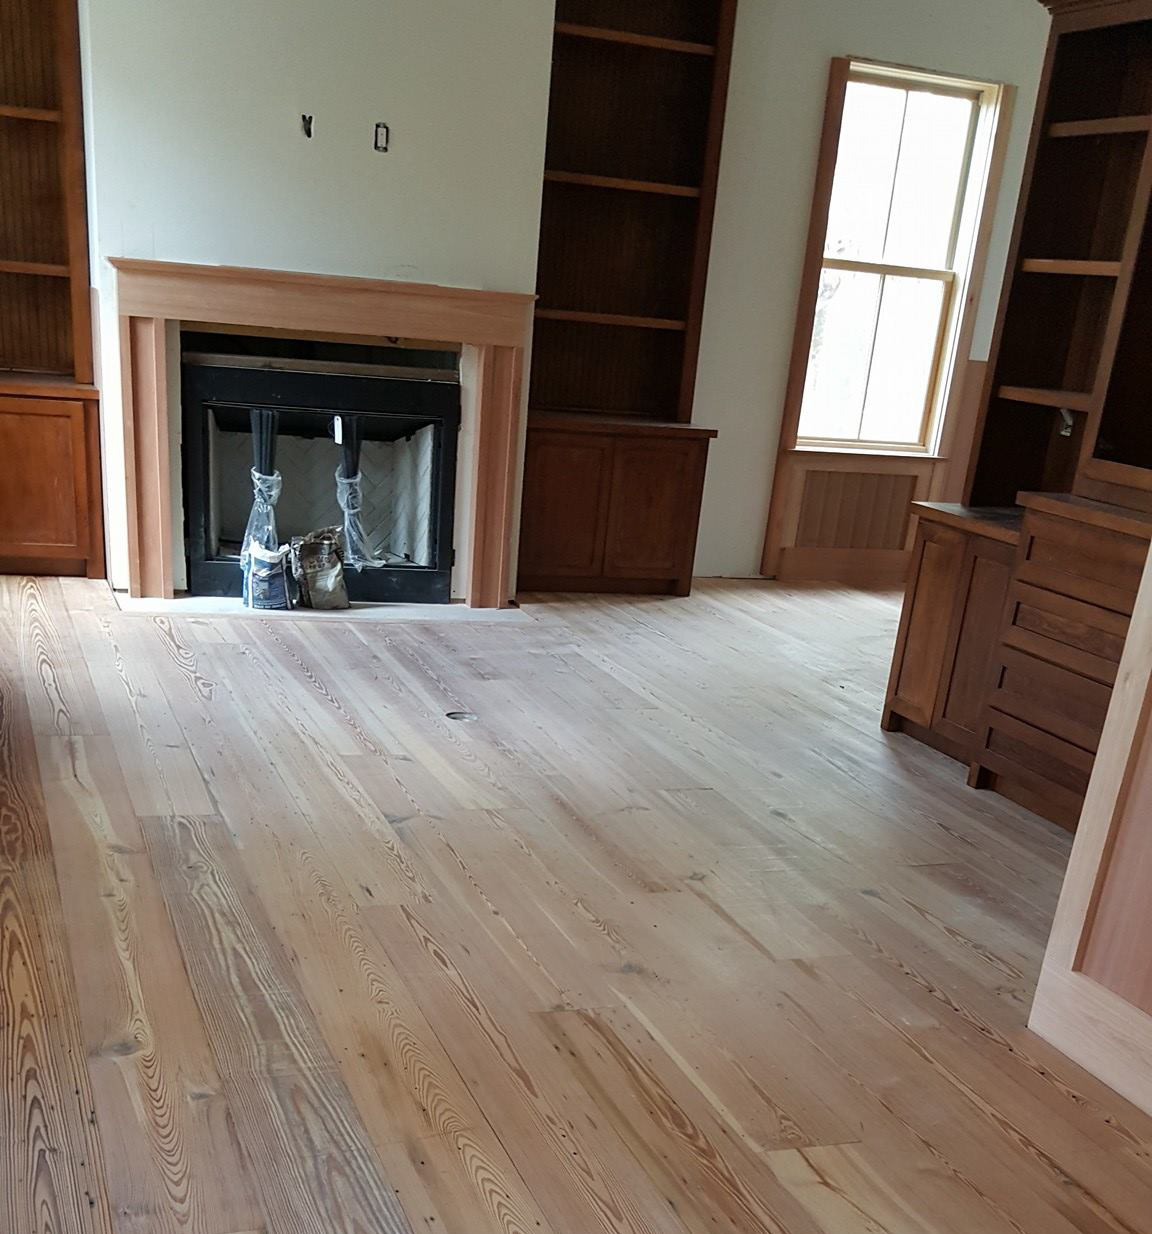 hardwood floor sanding companies of olde savannah hardwood flooring with regard to sand and refinish existing floors